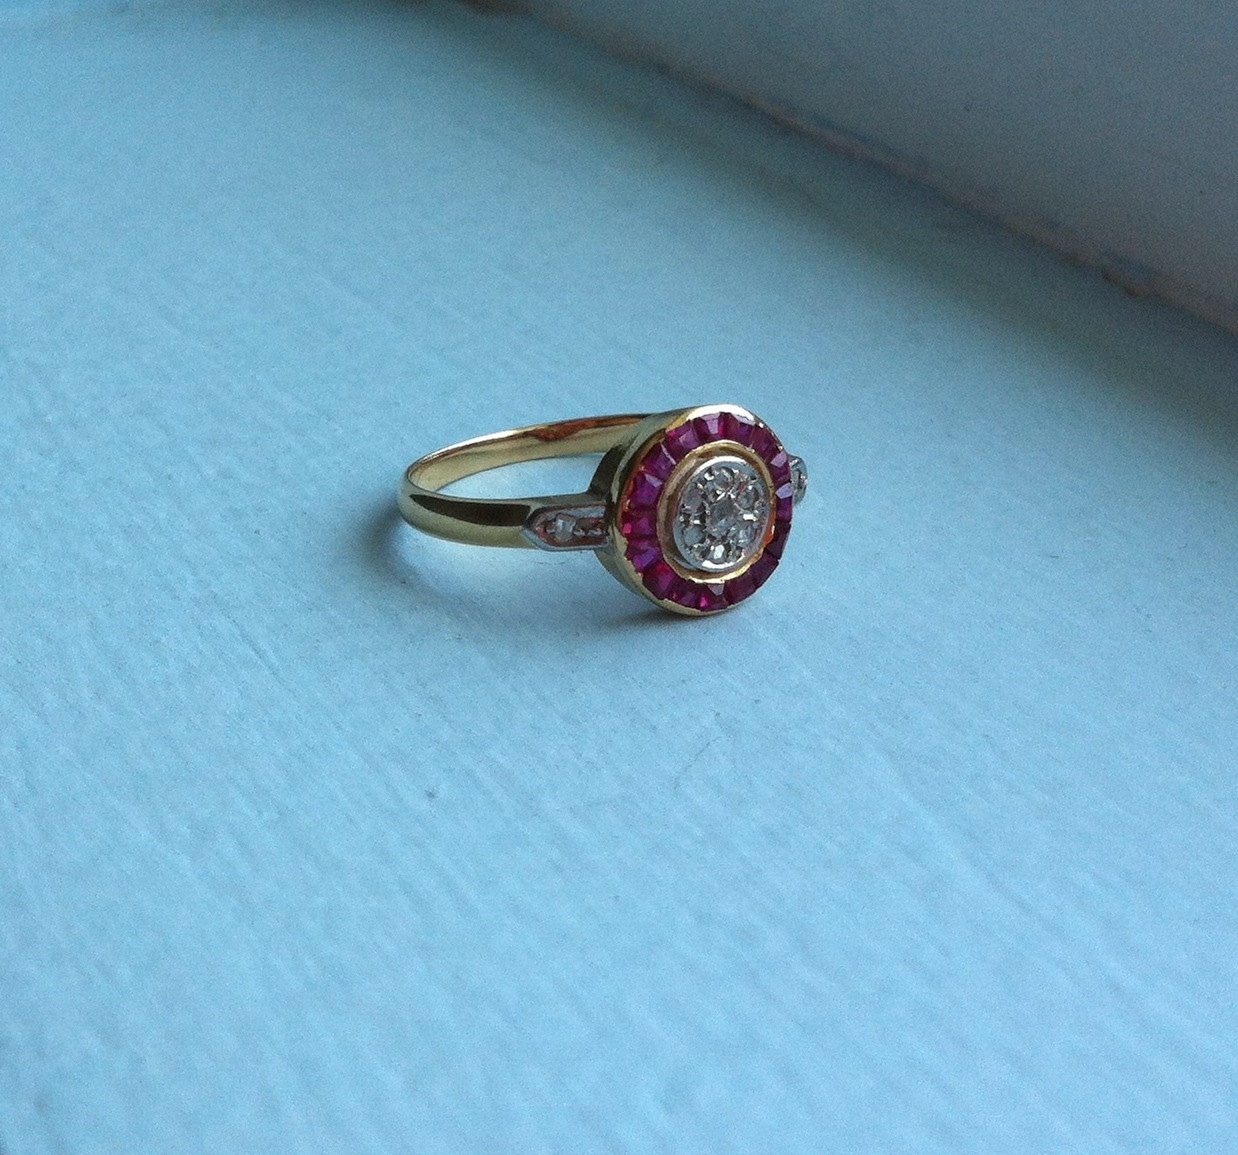 Rare Original Art Deco Target Ring Solid 18k Gold With